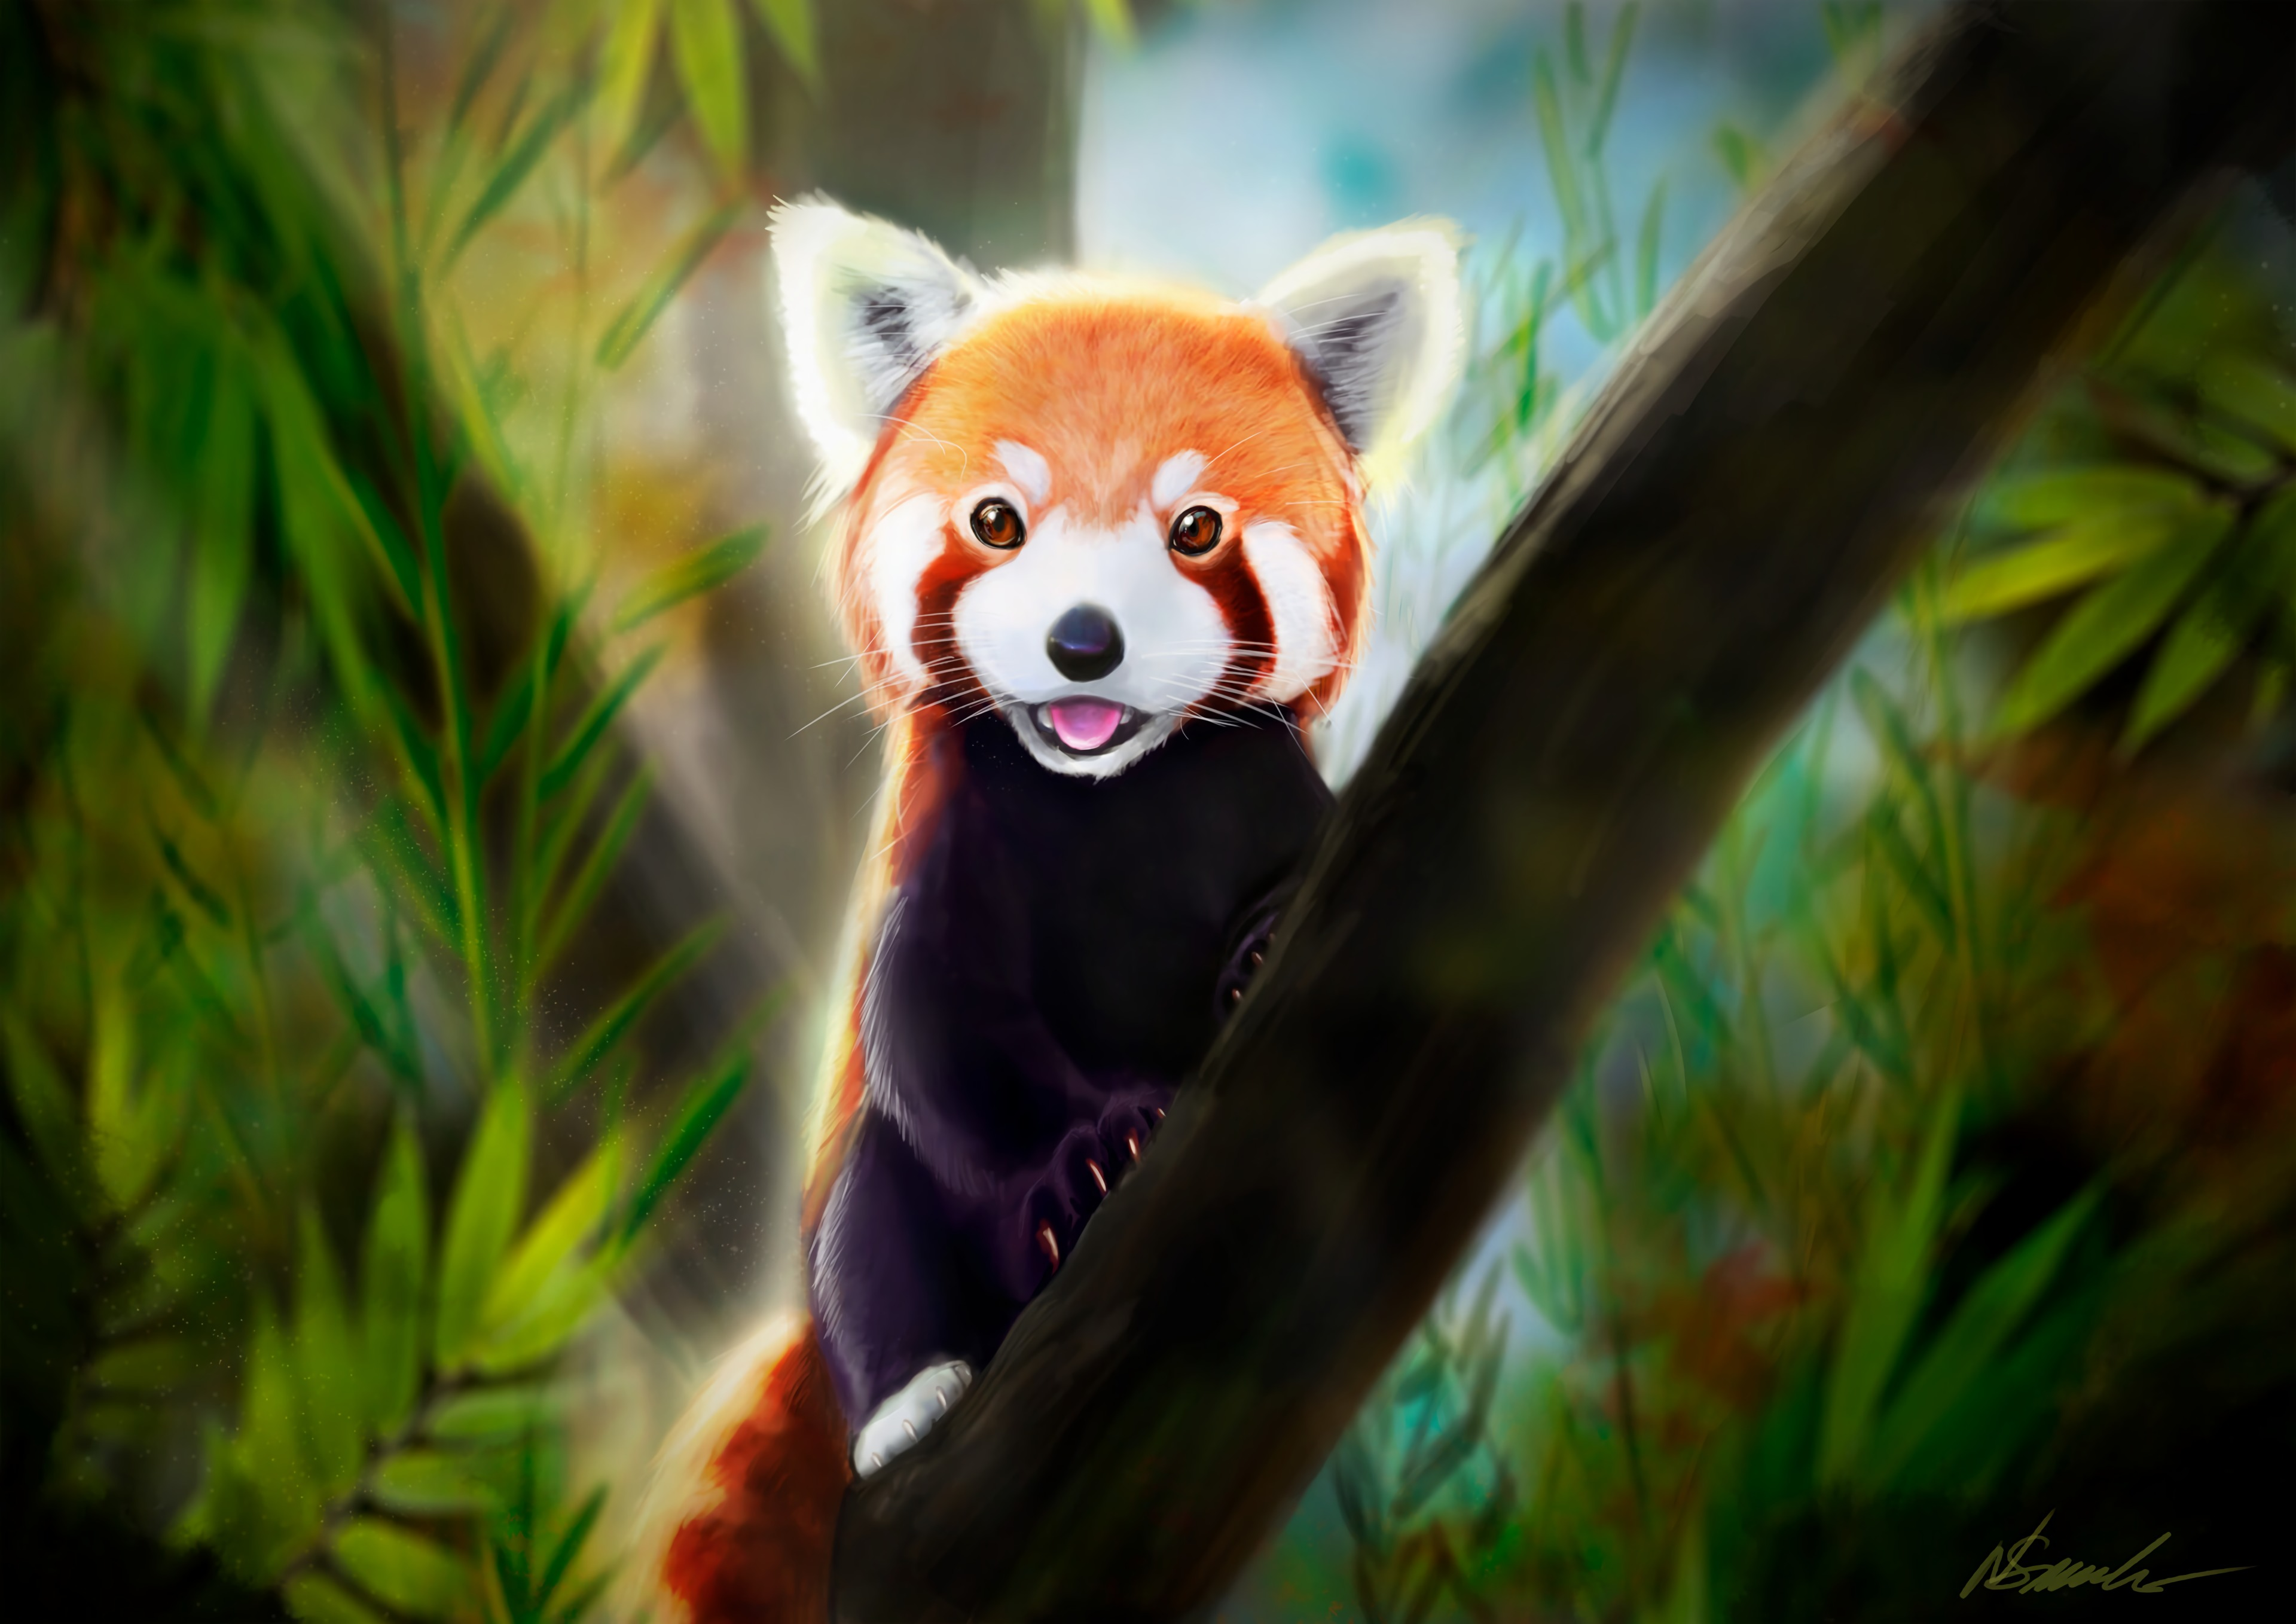 116410 Screensavers and Wallpapers Protruding Tongue for phone. Download Little Panda, Small Panda, Protruding Tongue, Tongue Stuck Out, Art, Animal, Nice, Sweetheart pictures for free